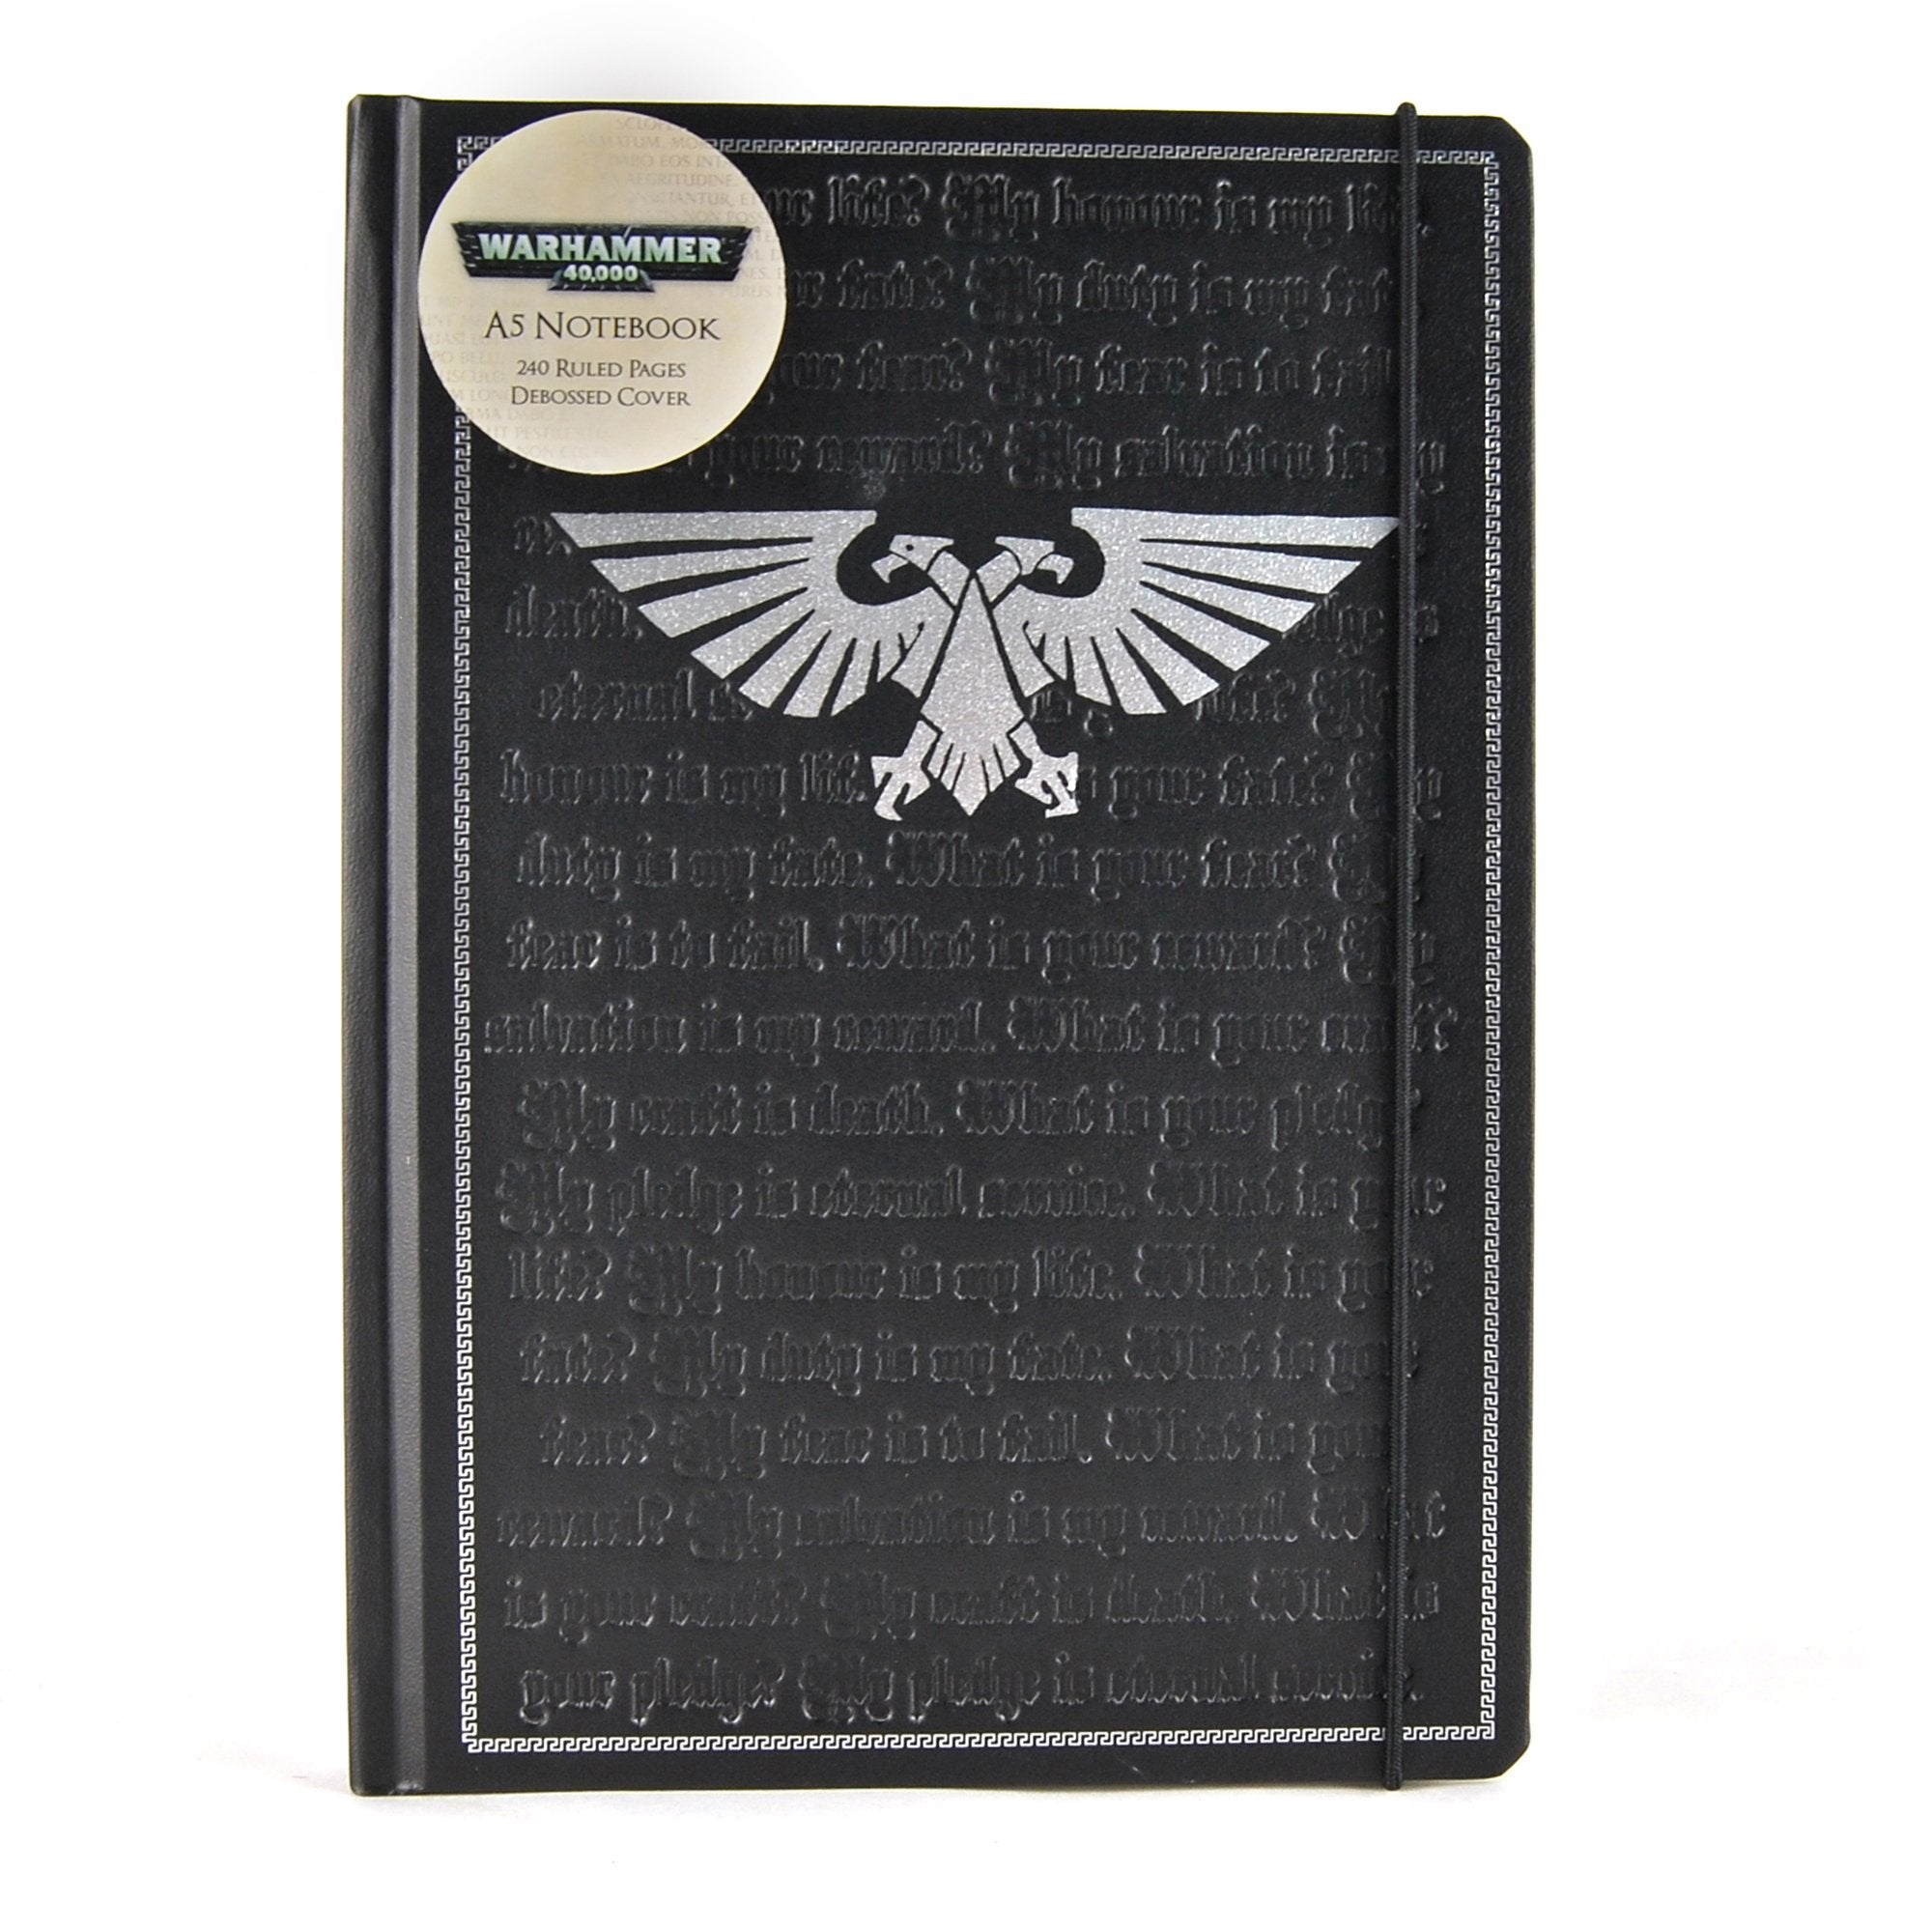 Warhammer 40,000 A5 Notebook - Pledge - Half Moon Bay US